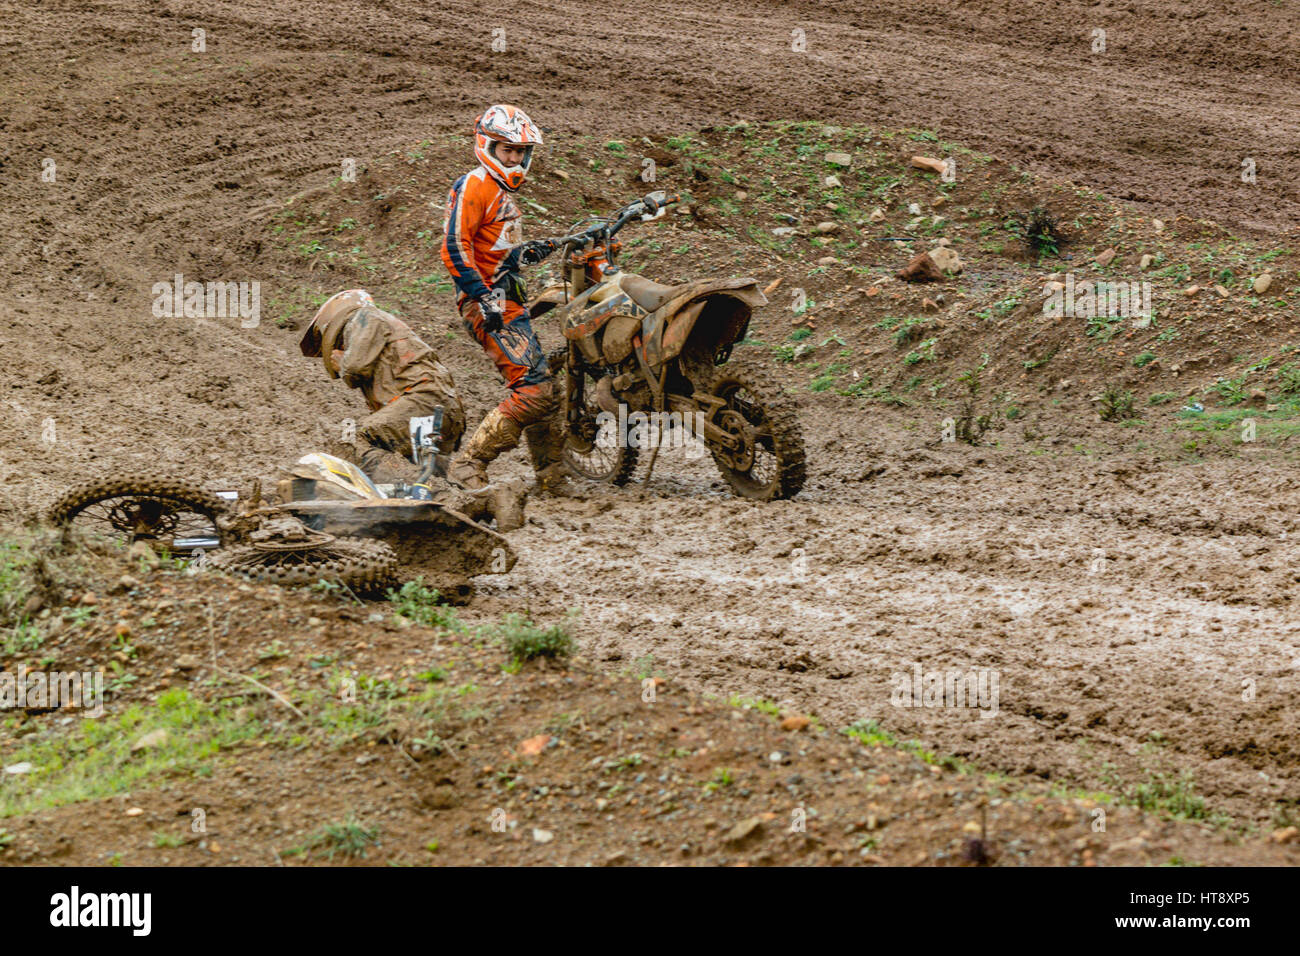 motocross accident in the mud - Stock Image